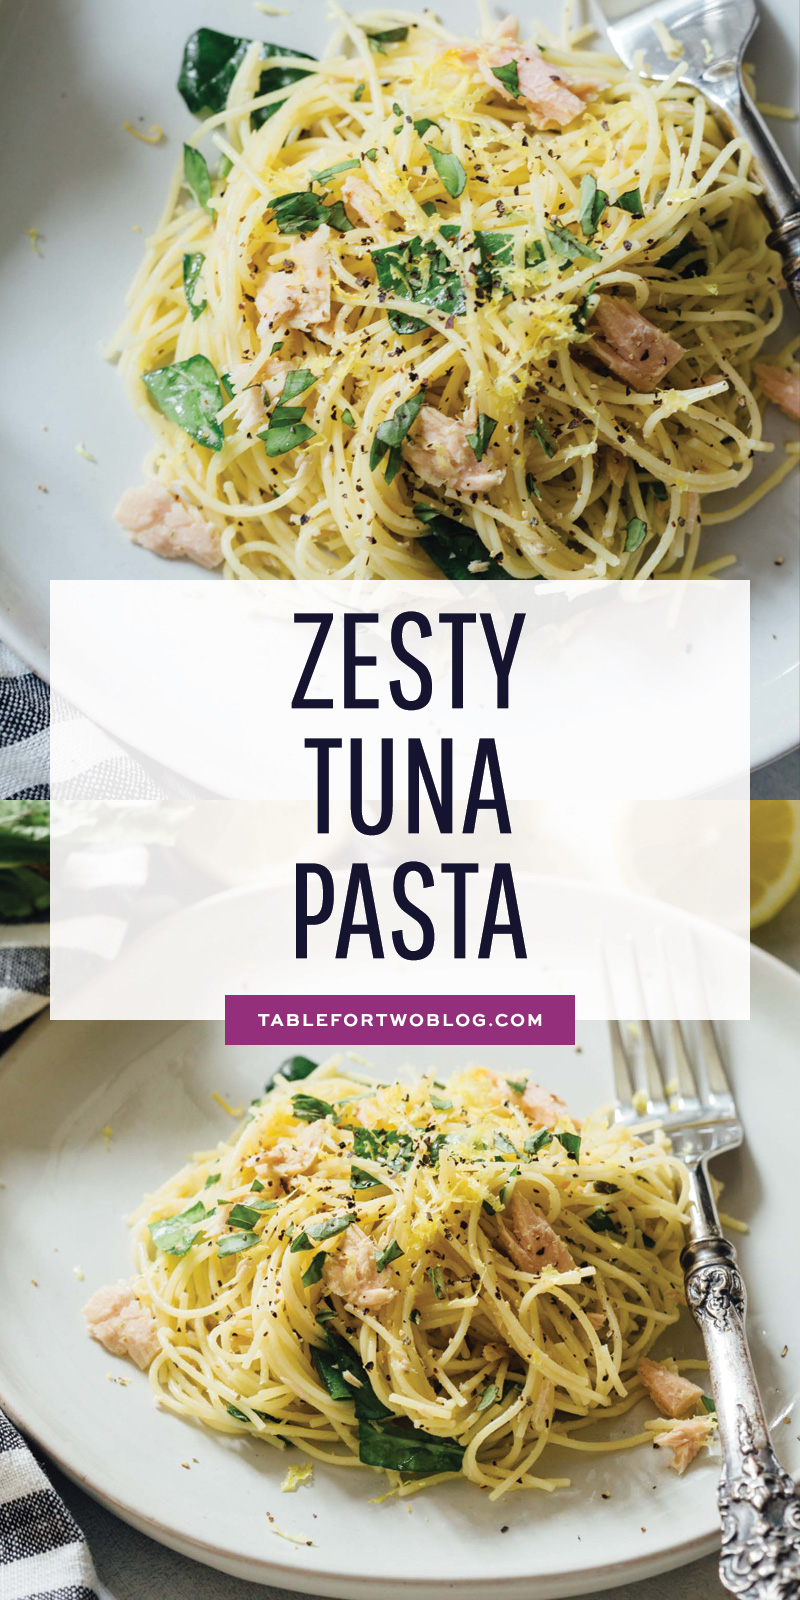 Zesty tuna pasta! #ad It's light and refreshing but has bold flavor! Quick and easy ingredients together with @BarillaUS' angel hair pasta make this one recipe you'll love for lunches and dinners every week! #PastaWorldChampionship #PassionforPasta #🍝